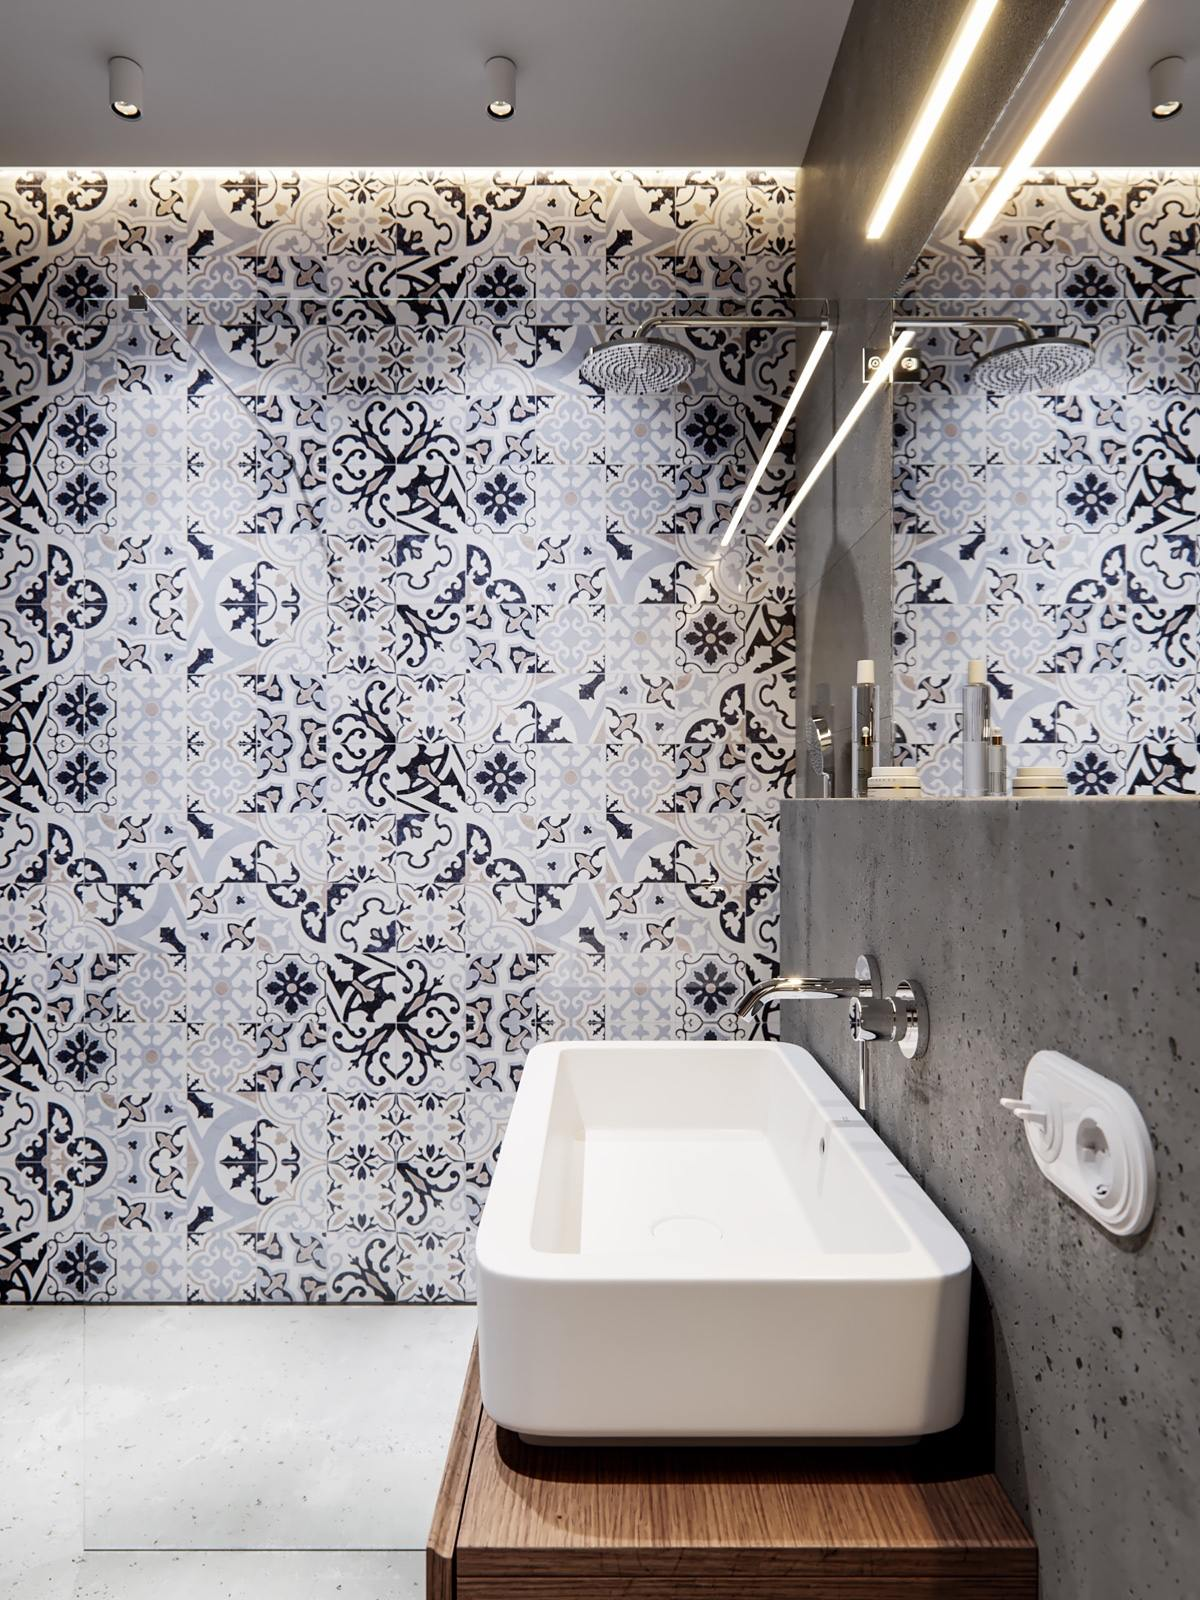 Creative Bathroom Tile Arrangement - A pair of stylish apartments that put their extra rooms to good use